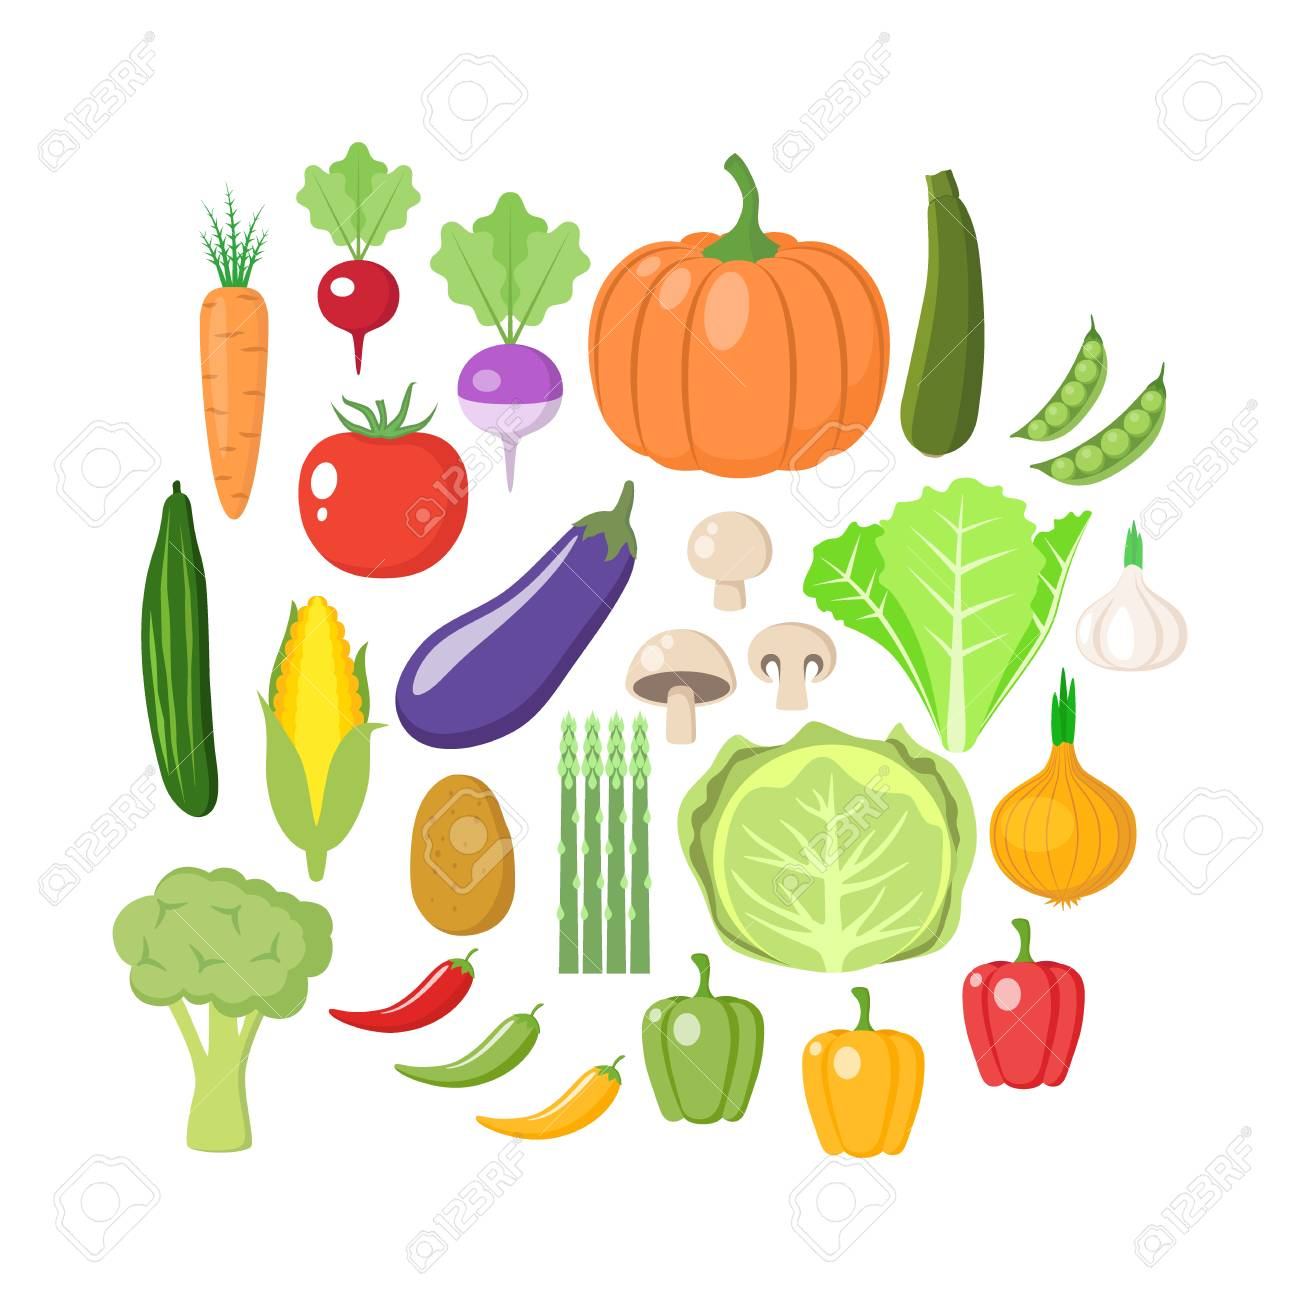 Colorful vegetables clipart set. Vegetable colored cartoon vector...